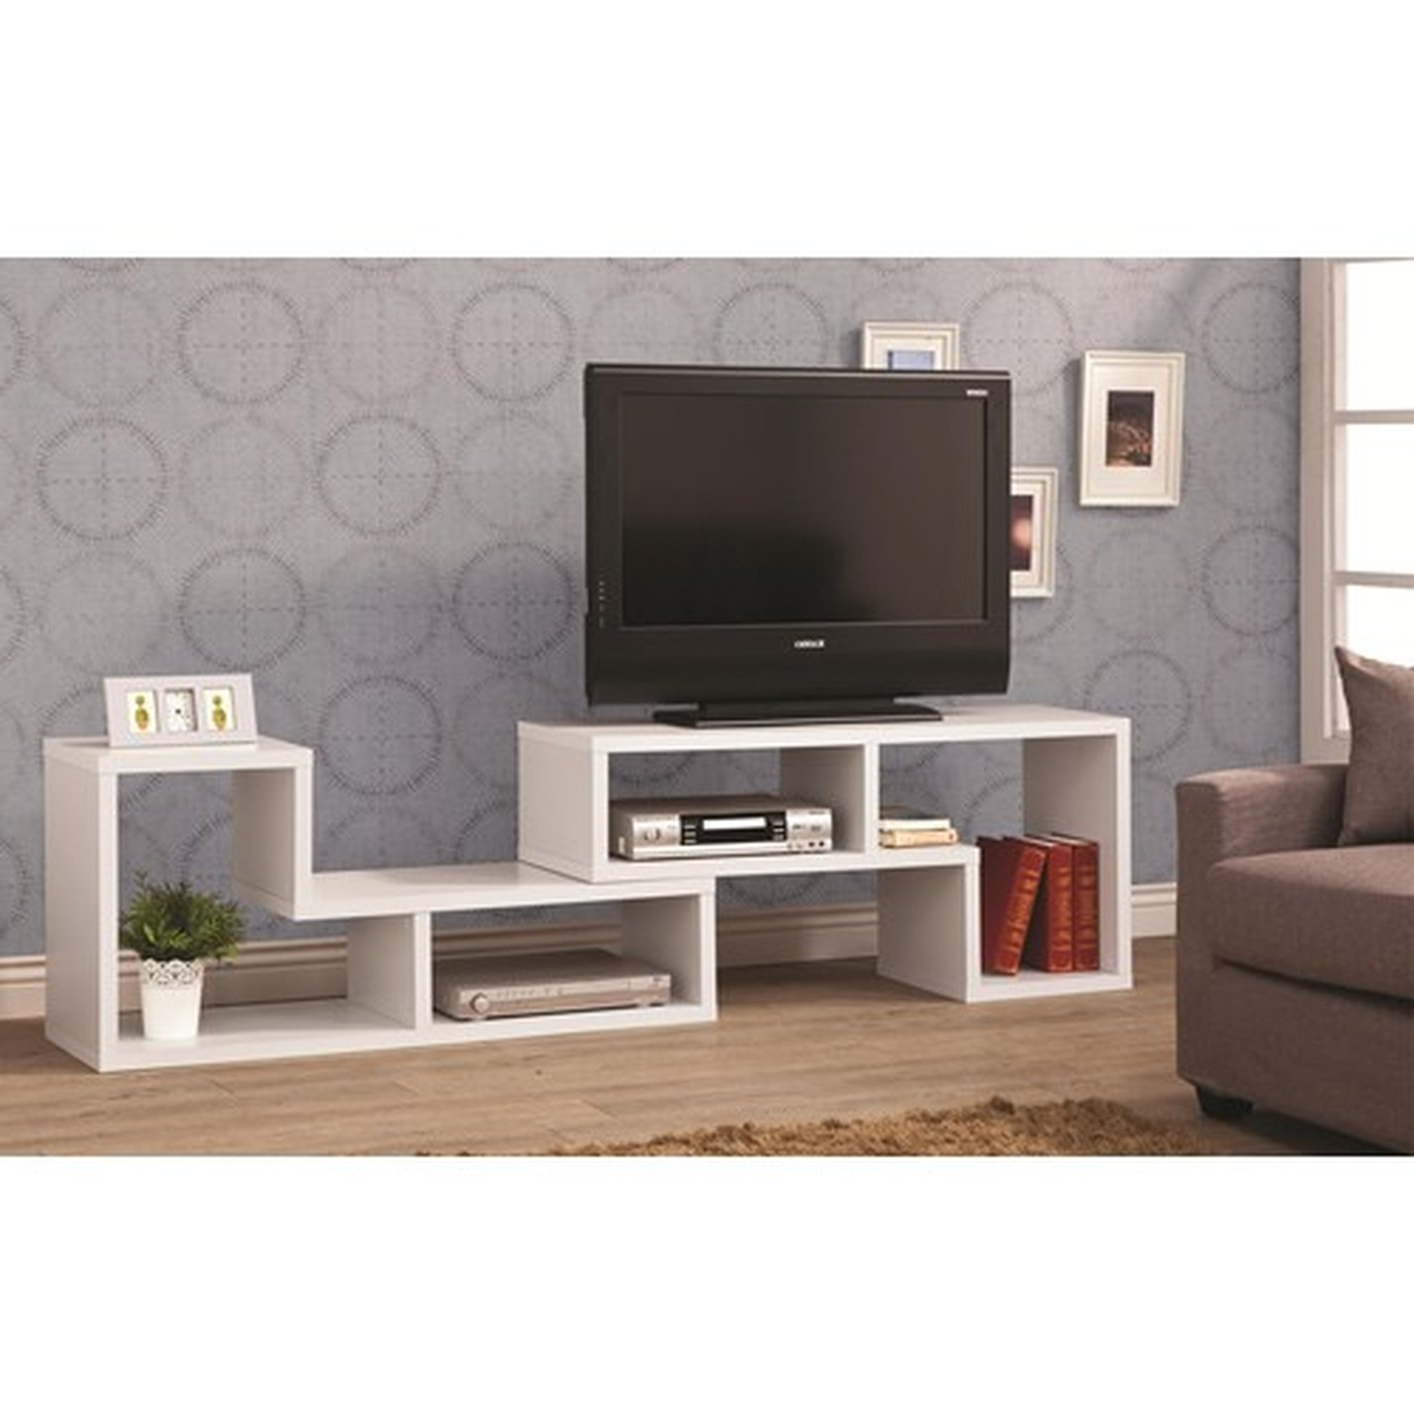 Cheap Wooden Tv Stands (View 10 of 20)